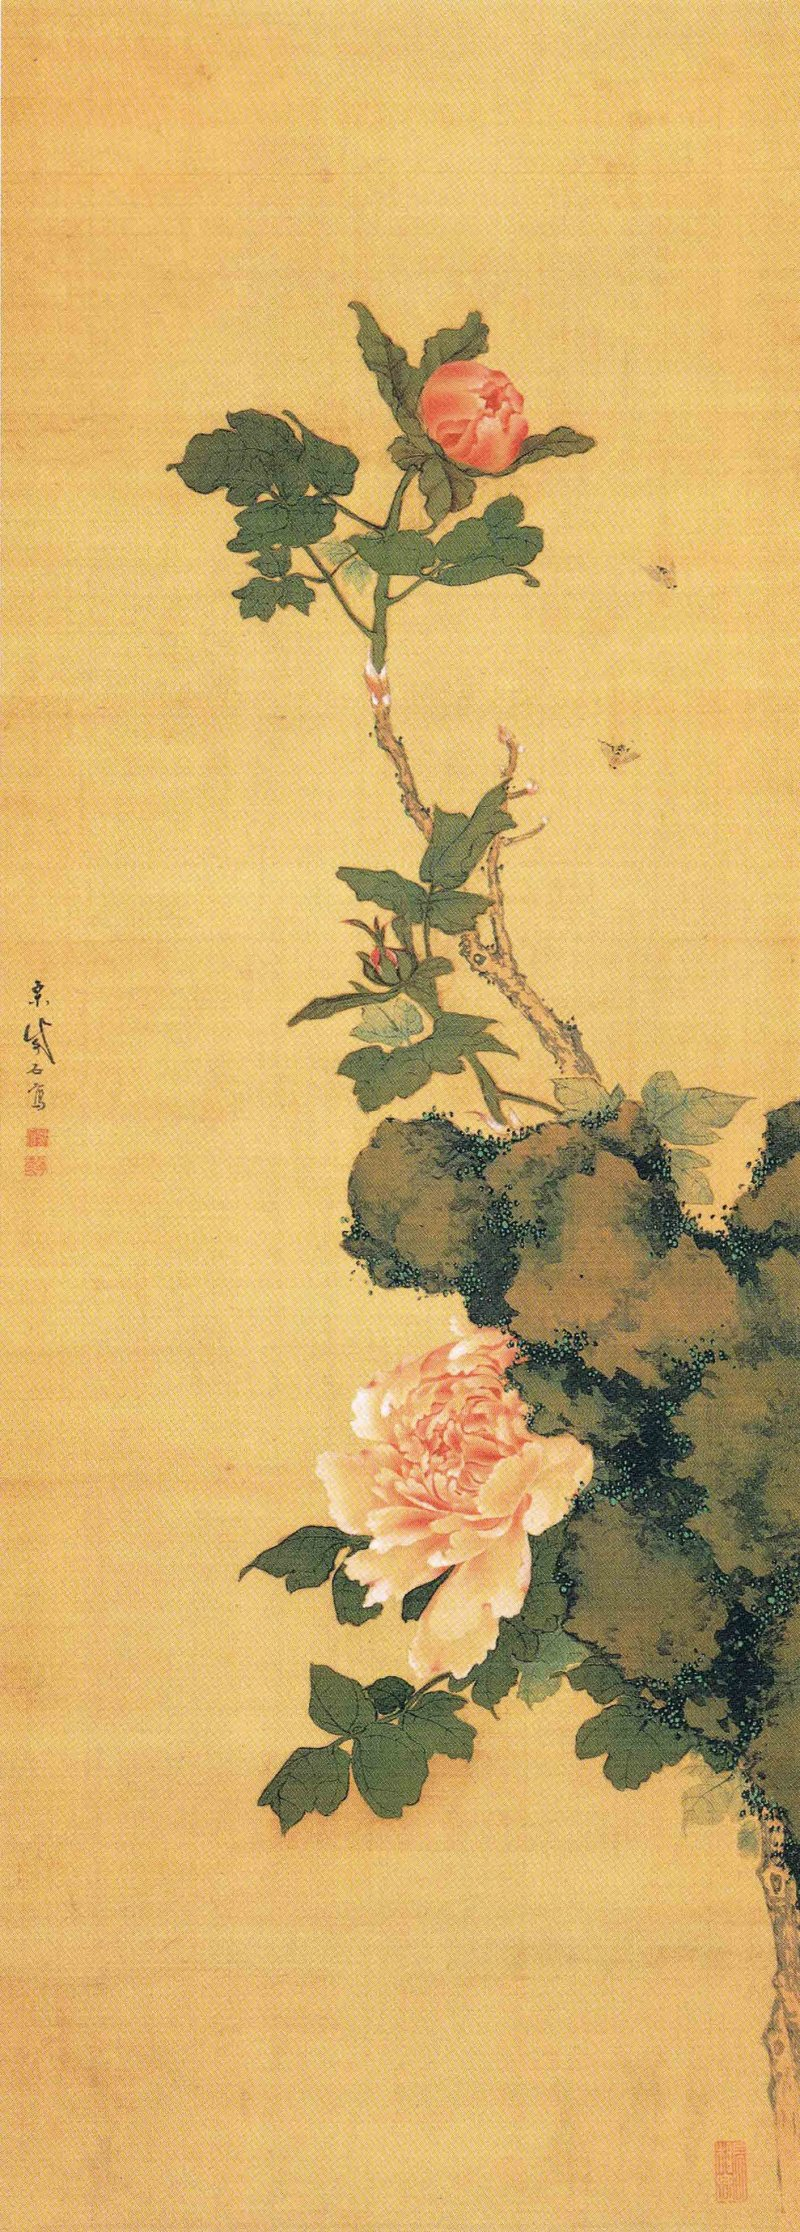 Floral works by Sō Shiseki will be on display at the event